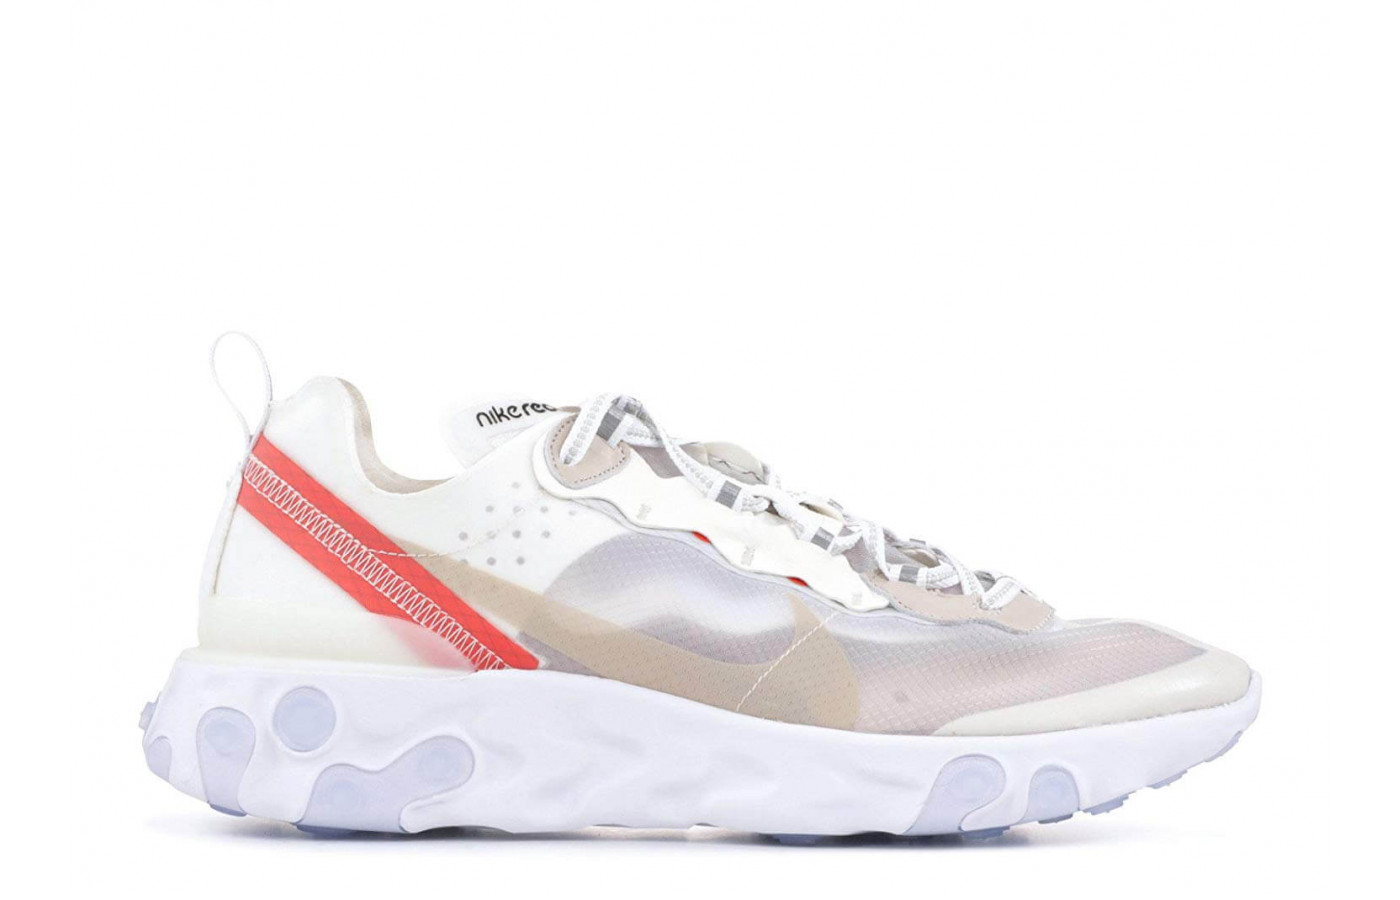 9c765e0622a3 Nike React Element 87 Review - Buy or Not in Apr 2019